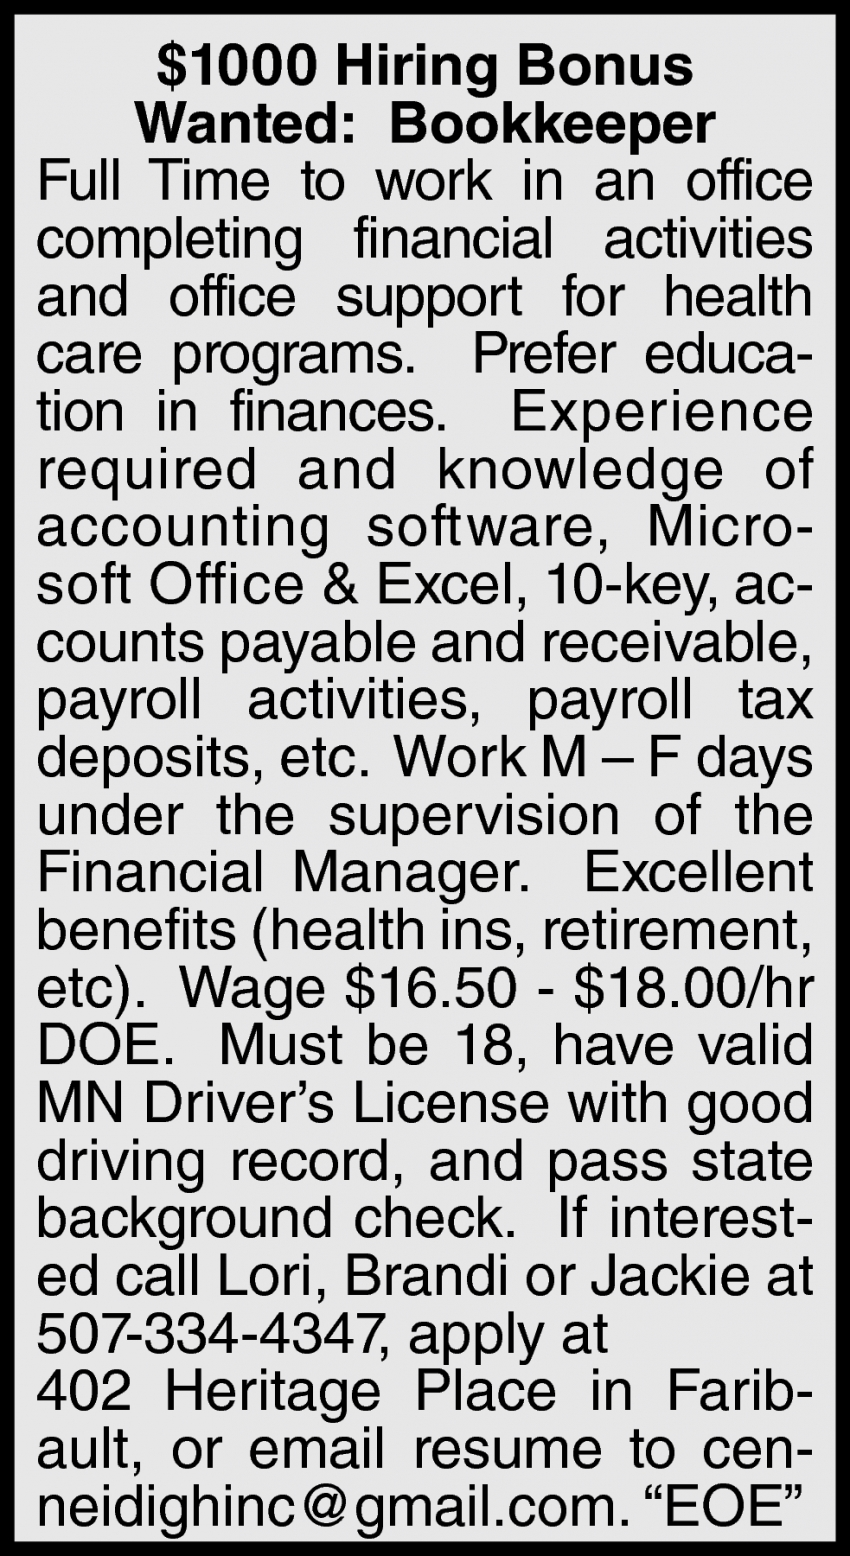 $1000 Hiring Bonus Bookkeeper